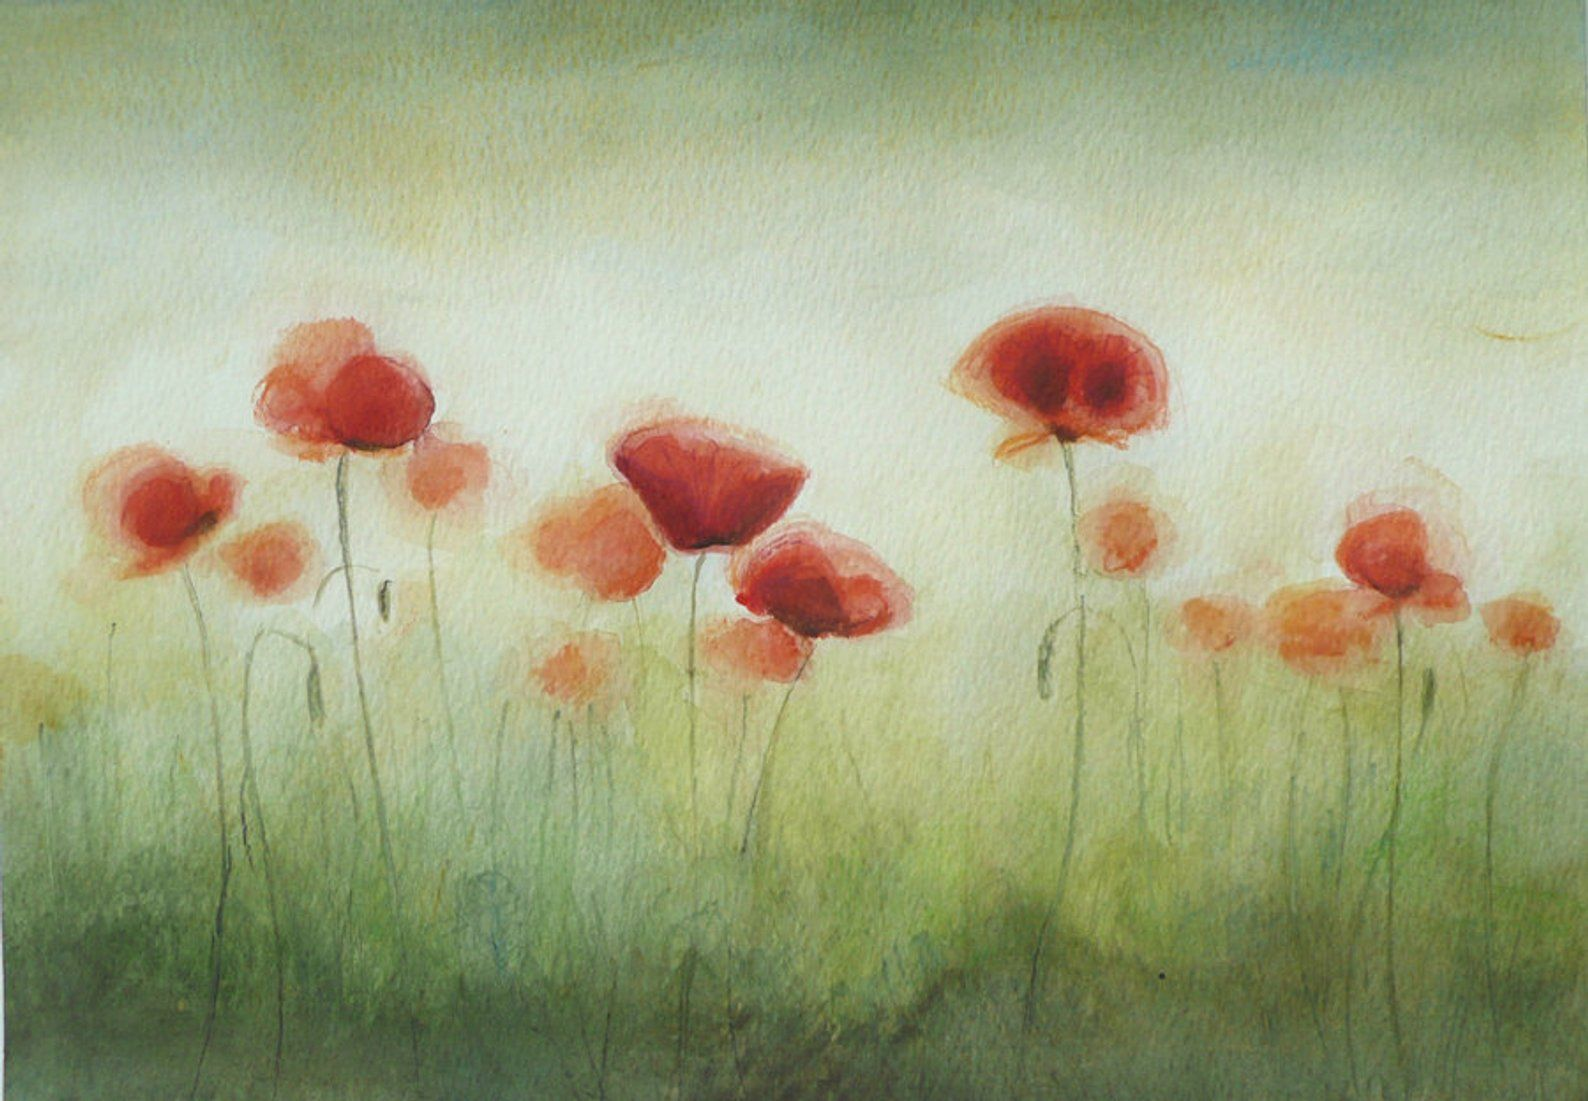 Red Poppies Watercolor Painting Red Wild Flowers Painting Original Art Watercolor Poppy Art Field Of Flowers Room Decorations In 2020 Mohnblumen Kunst Wasserfarben Kunst Wie Man Blumen Malt